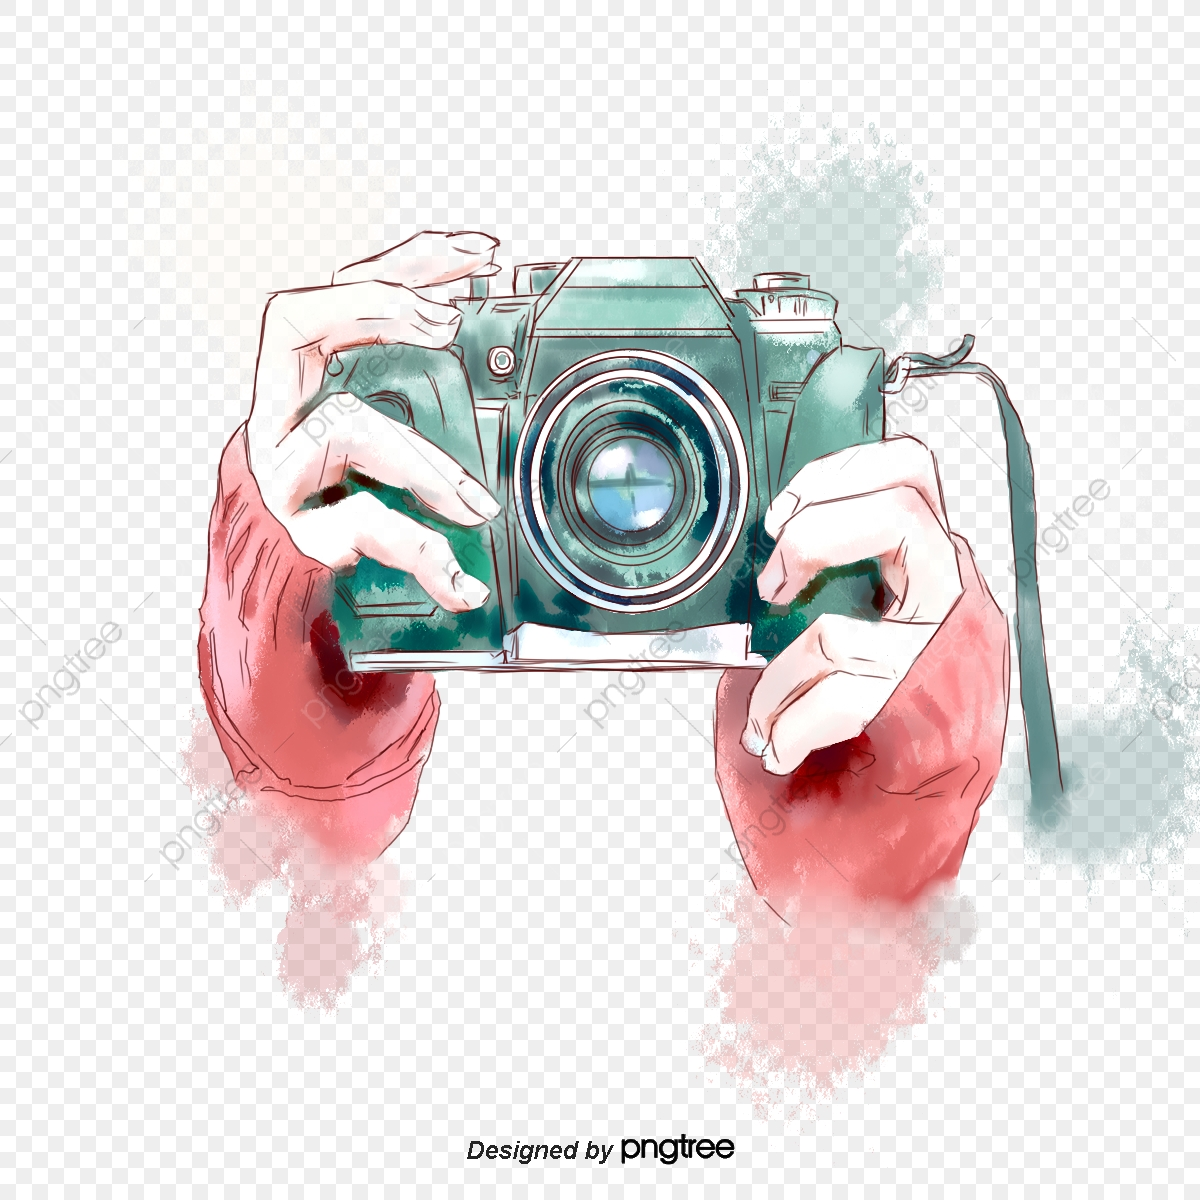 Hand Painted Watercolor Green Camera Hand Elements Slr Camera Photograph Photography Png Transparent Clipart Image And Psd File For Free Download